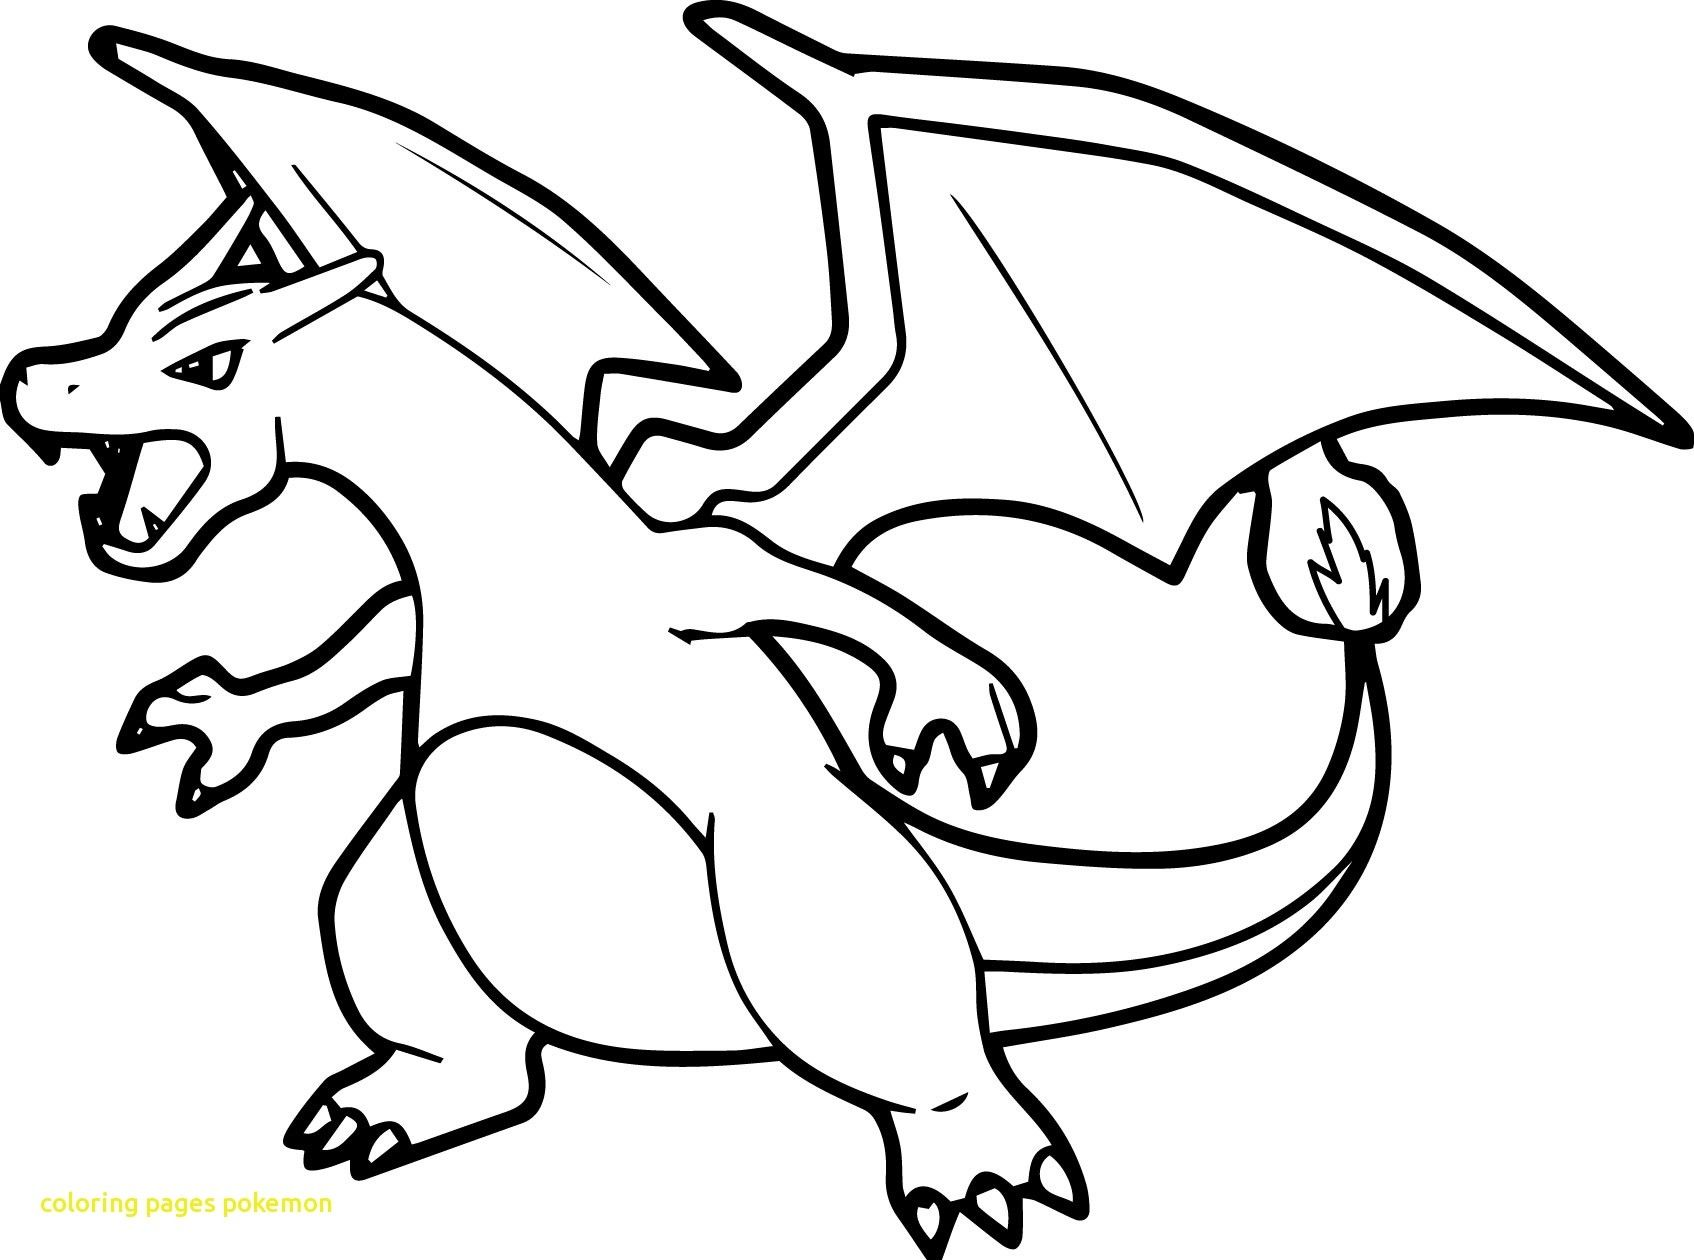 1694x1260 Pokemon Charizard Coloring Pages P Coloring Pages Pokemon